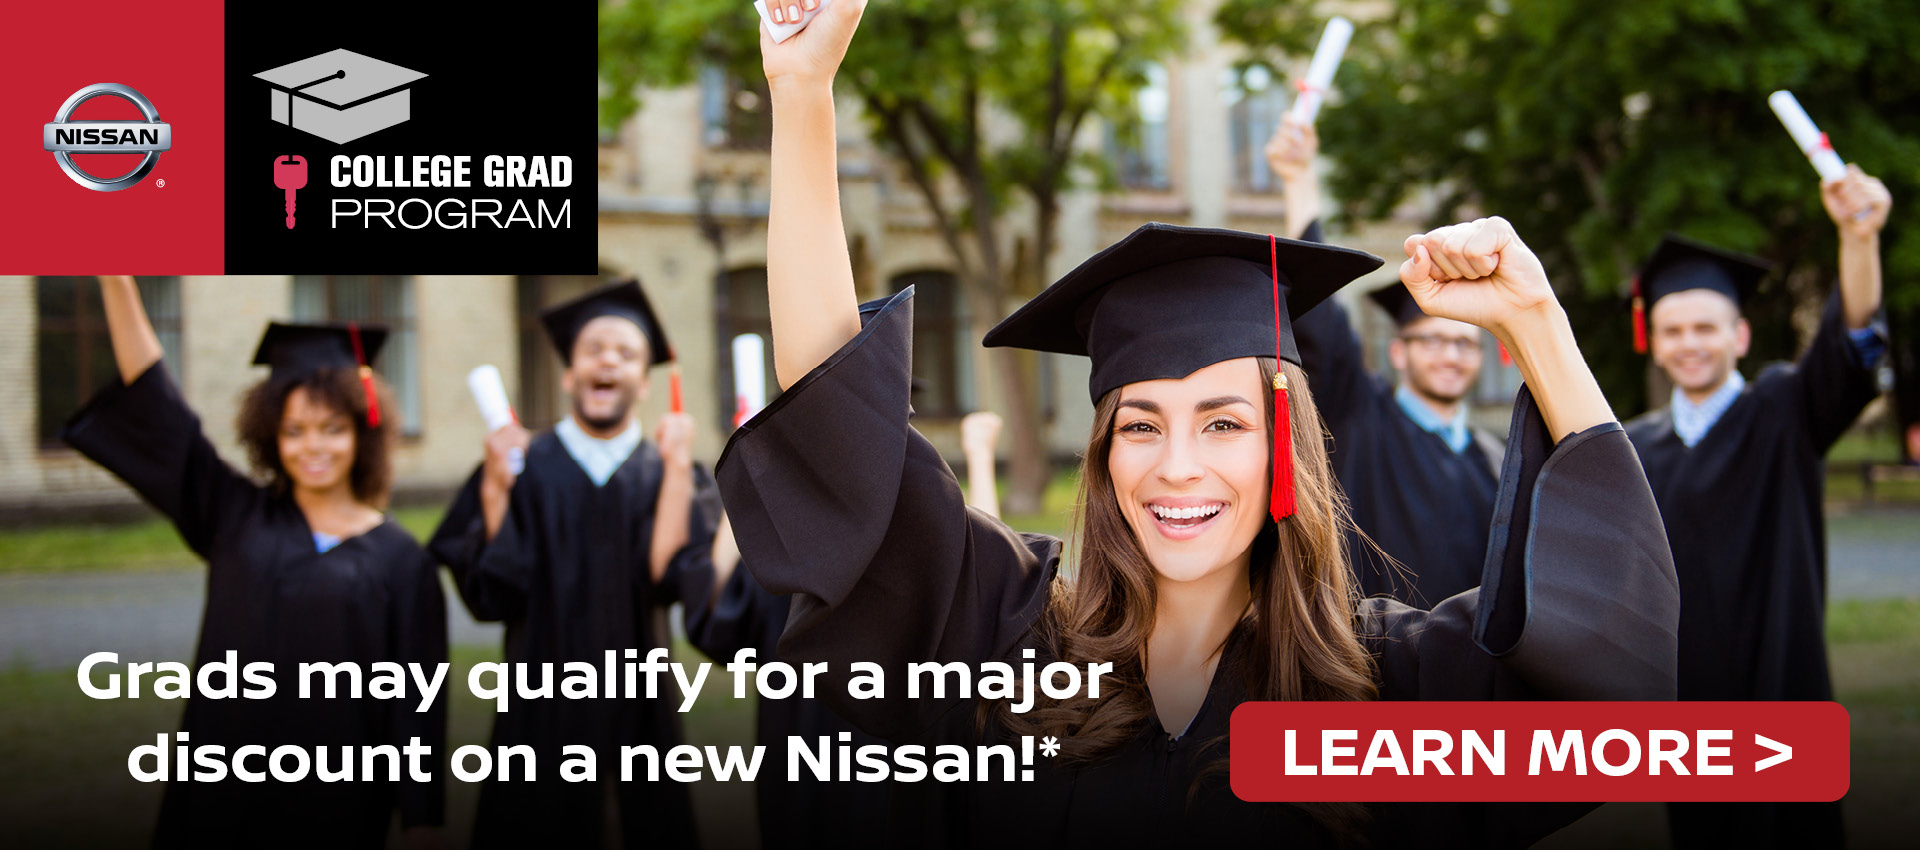 Mossy Nissan - College Grad